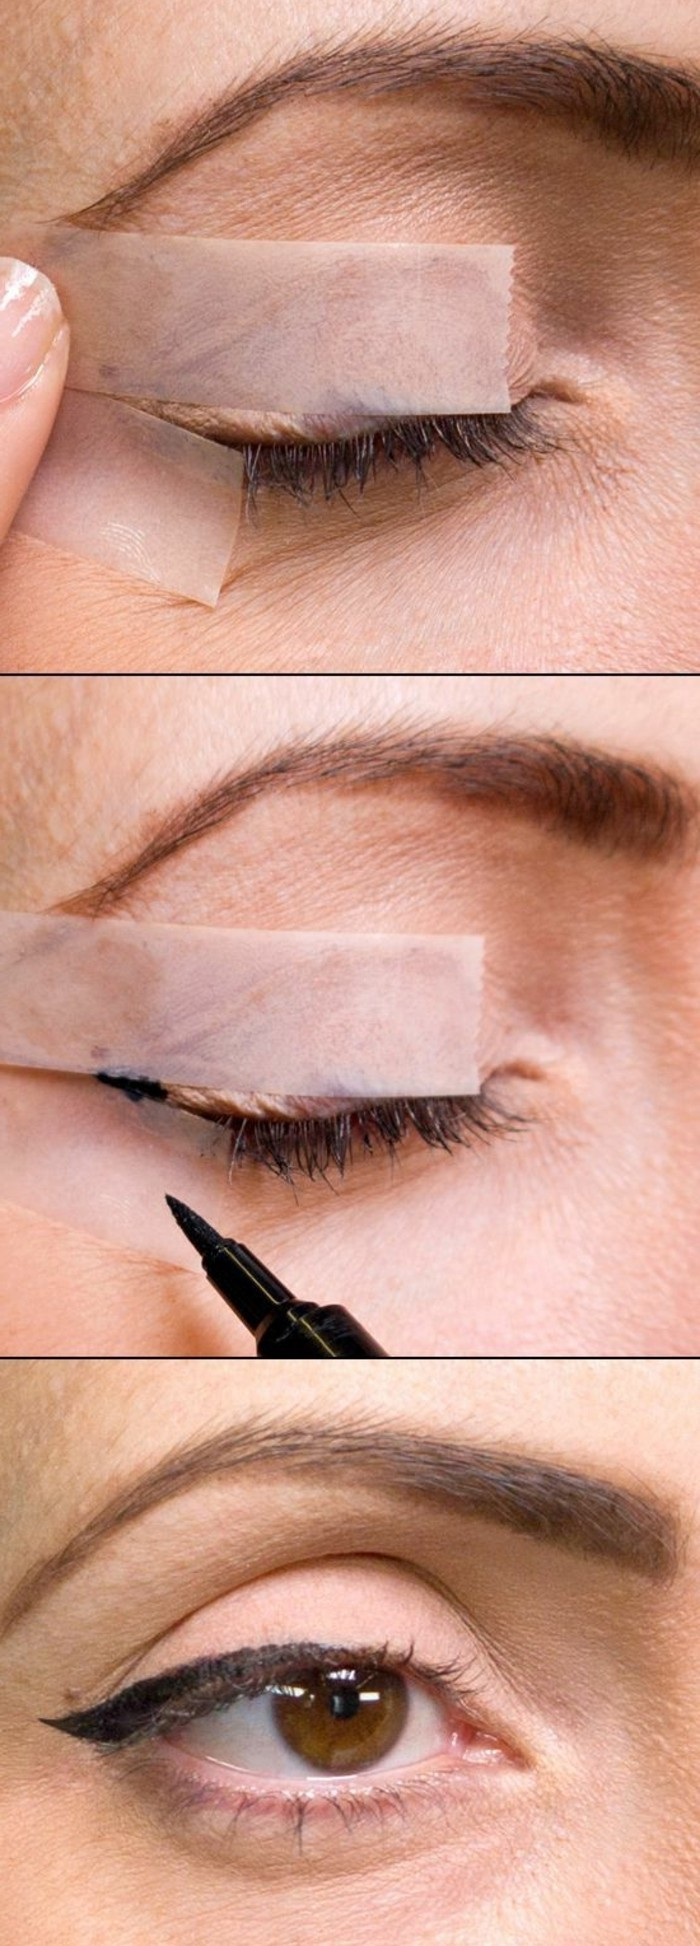 maquillage-chat-femme-comment-tracer-leye-liner-astuces